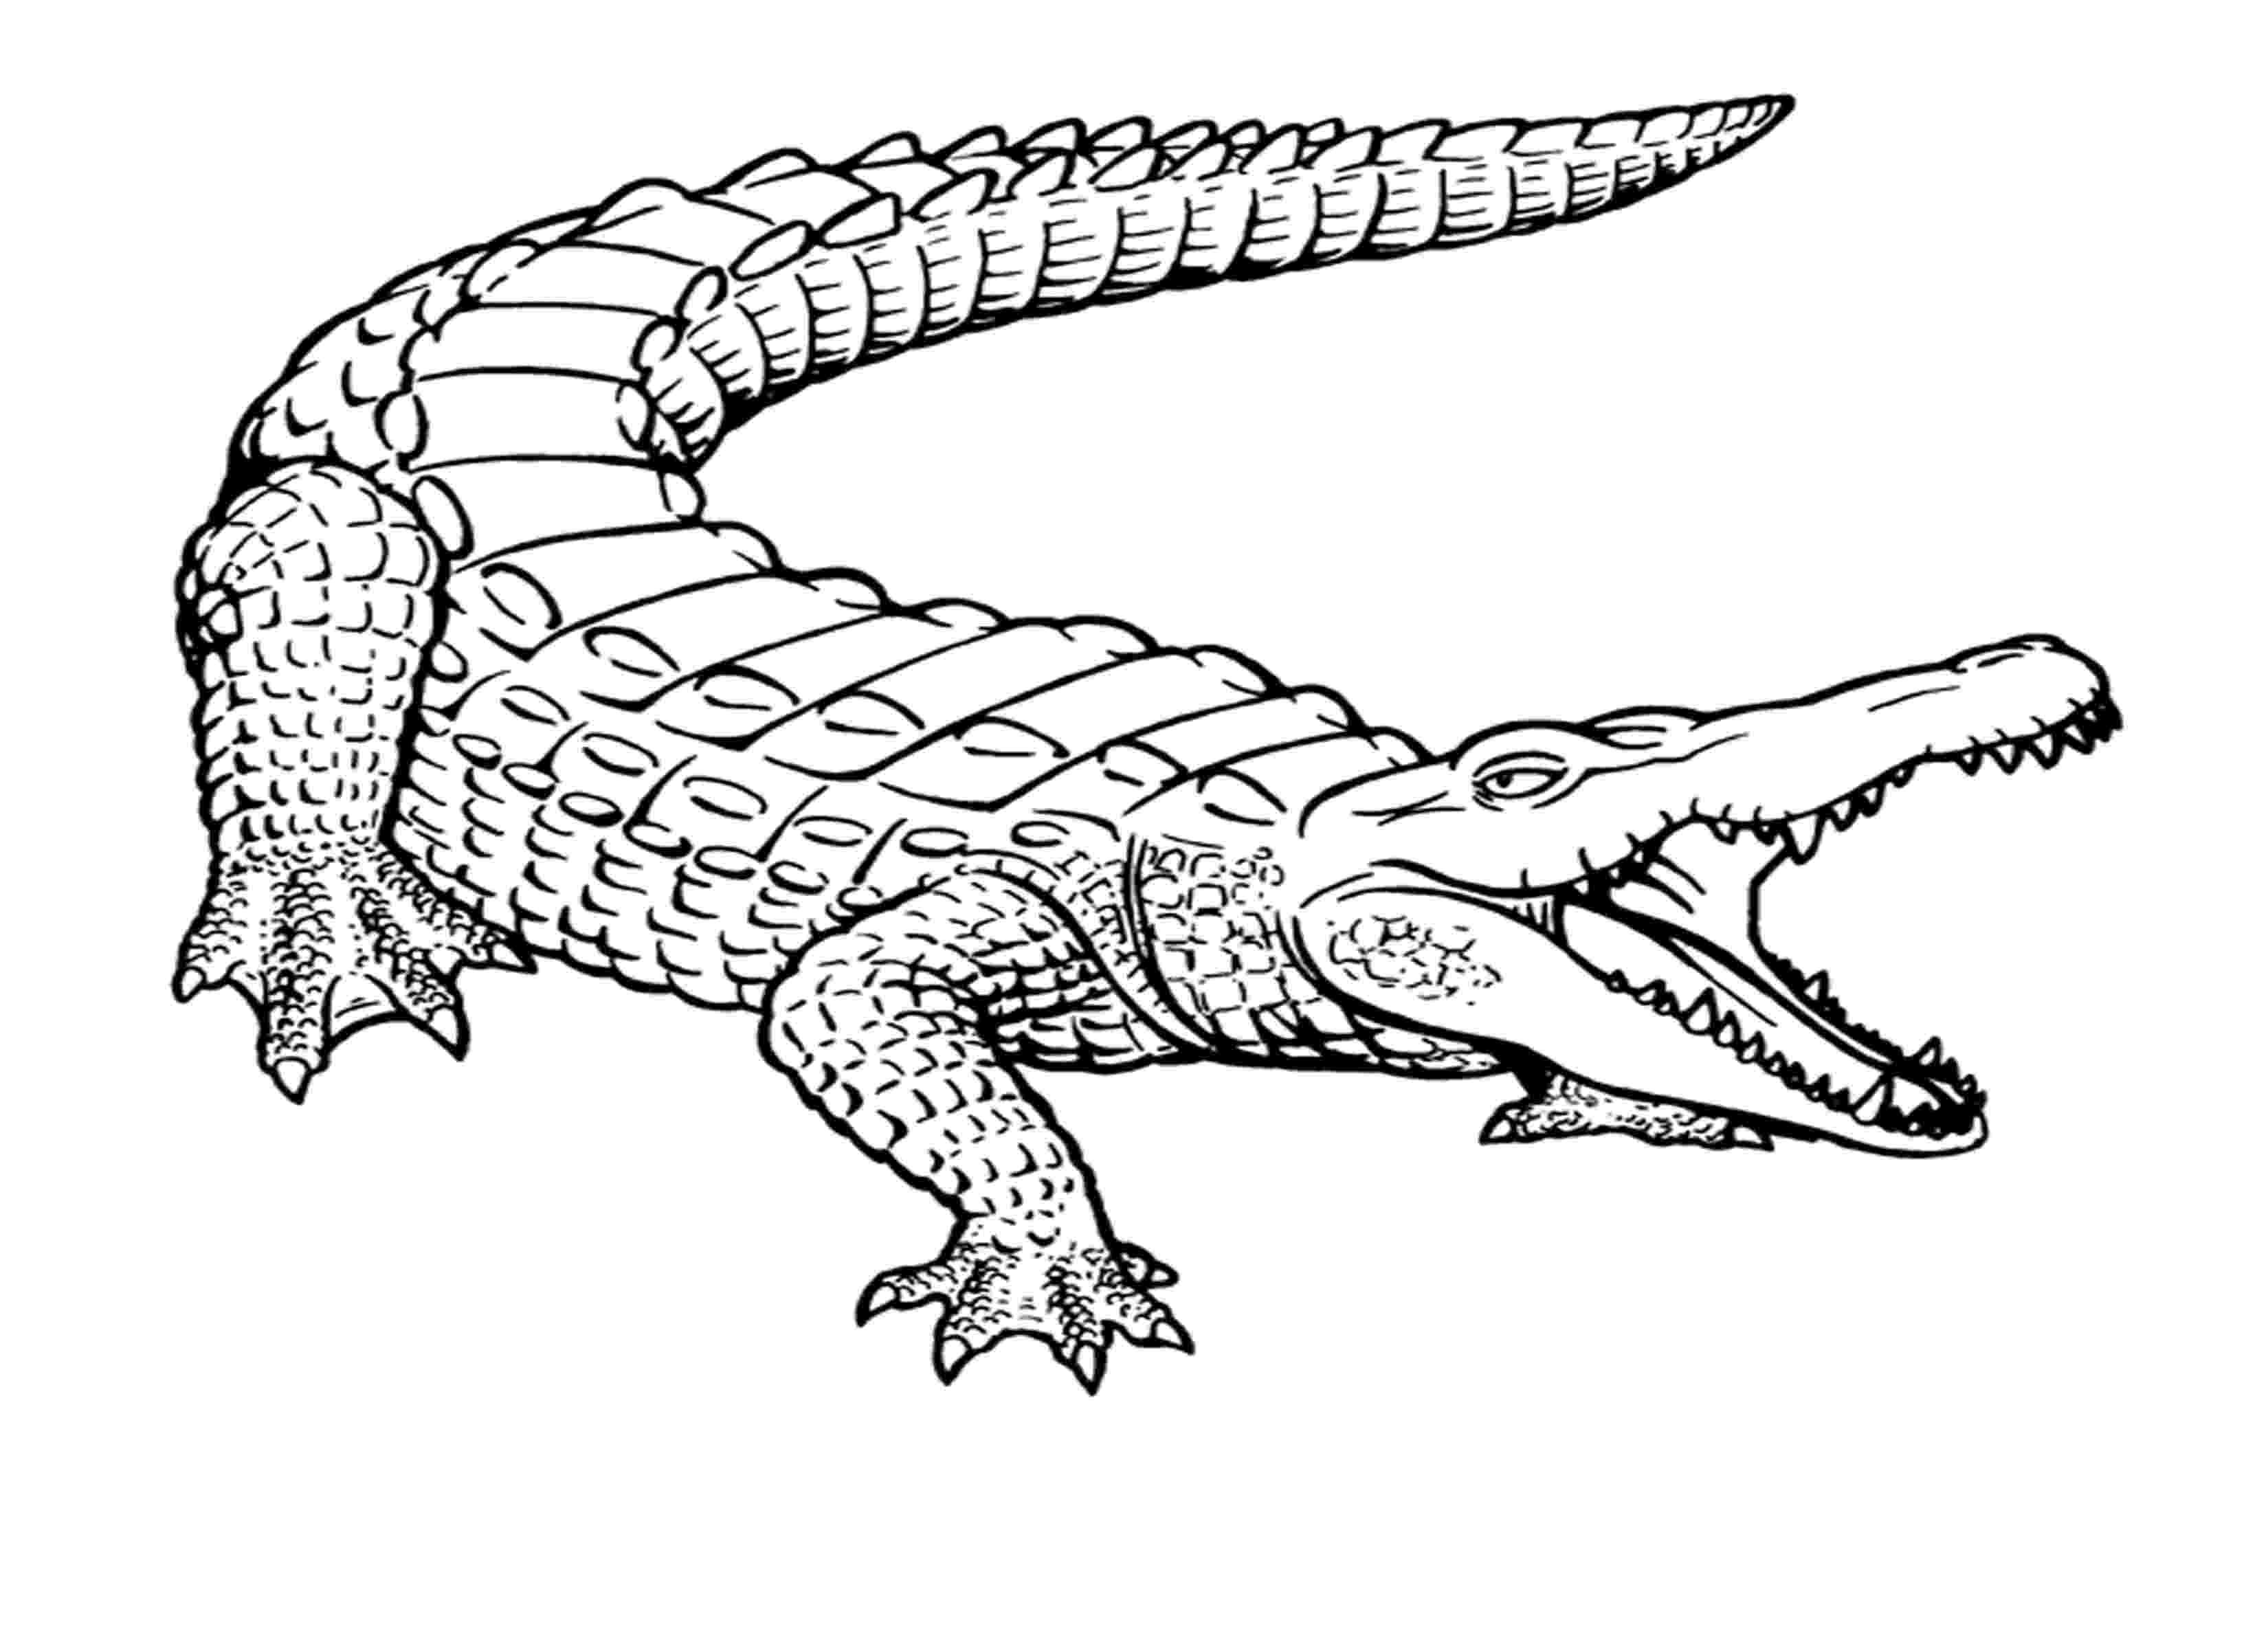 crocodile colouring page crocodile coloring pages to download and print for free crocodile colouring page